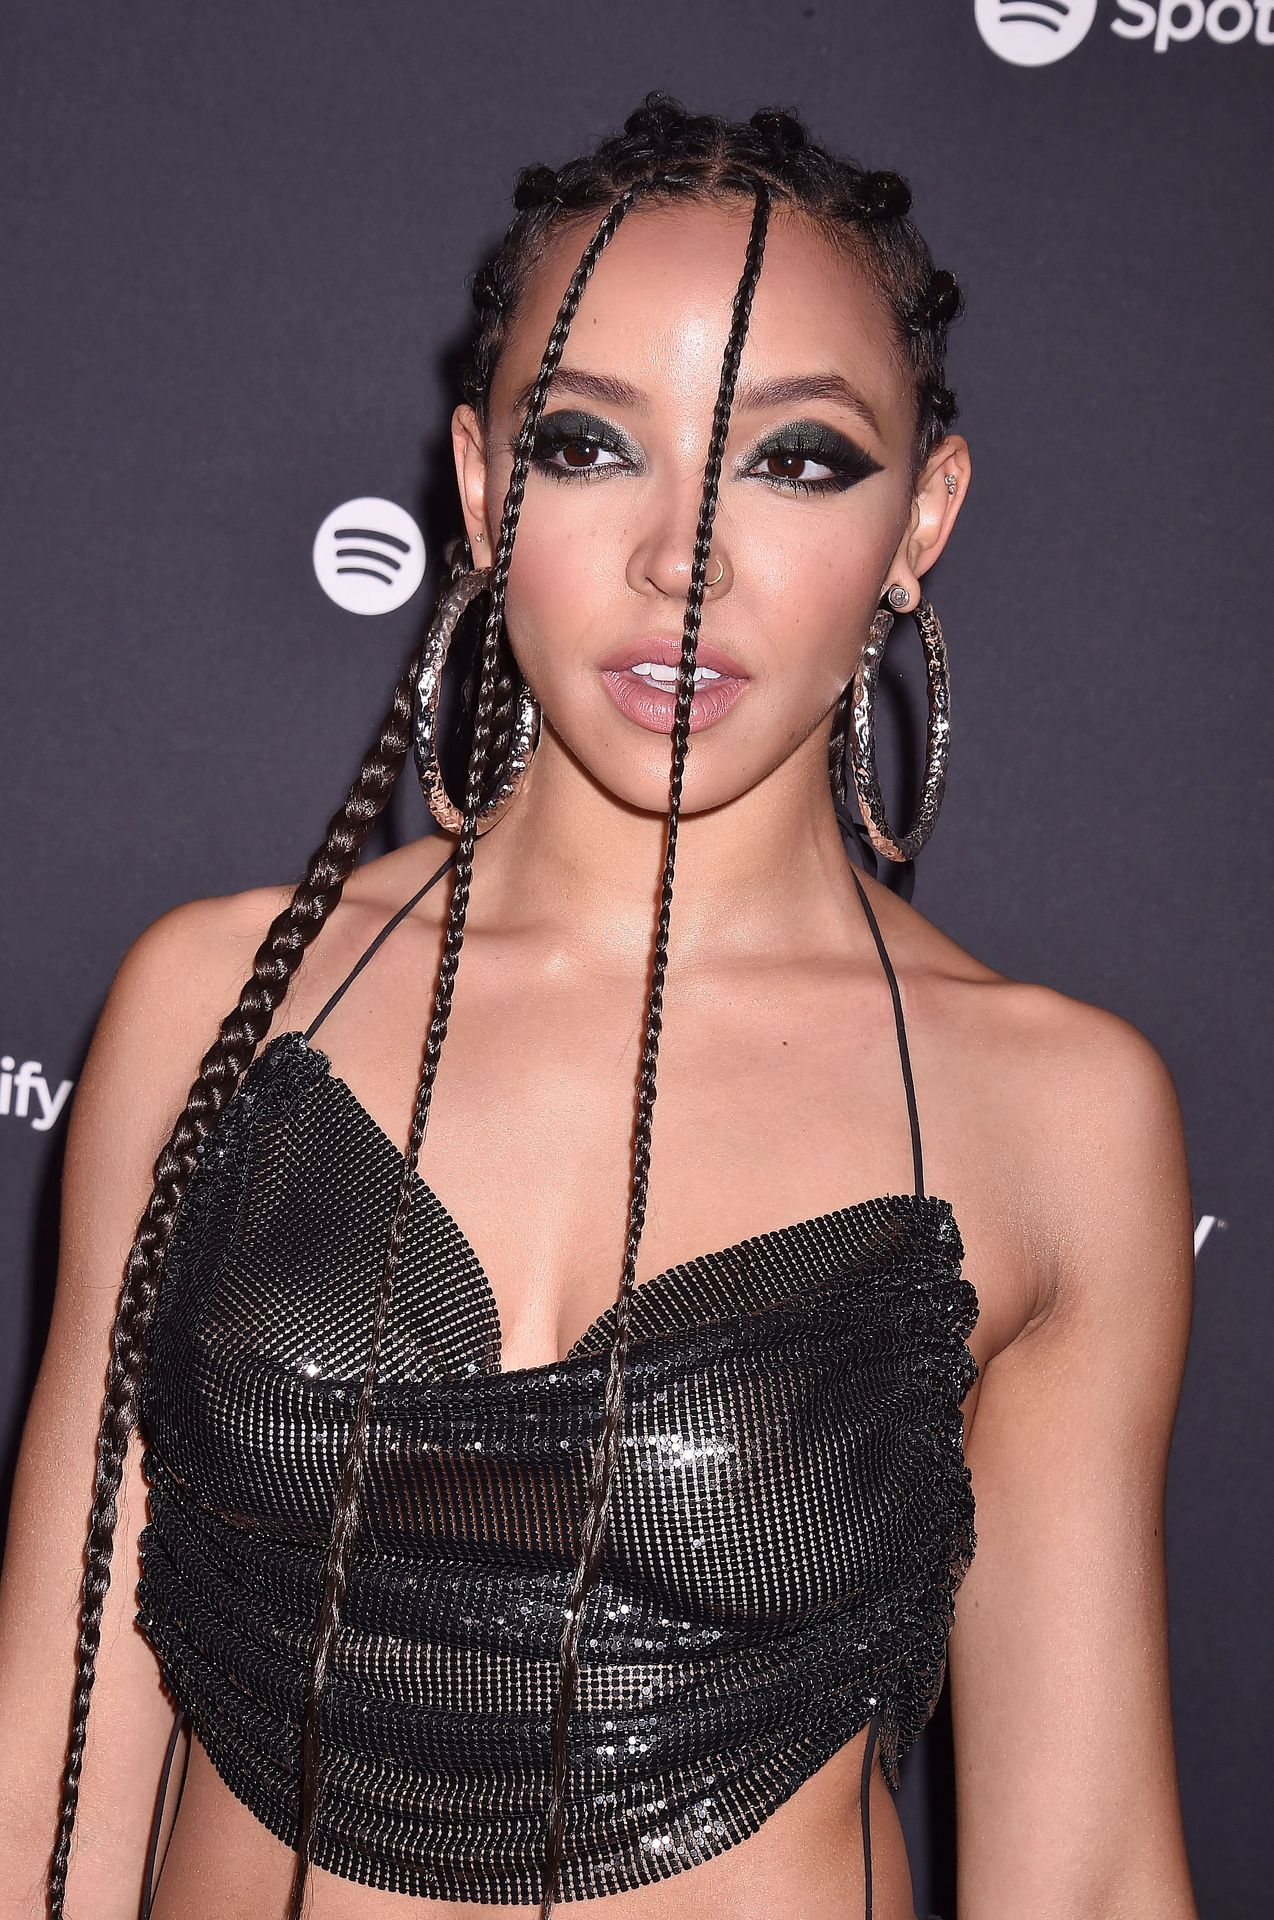 Tinashe Flaunts Her Tits At The Spotify Best New Artist Party 0022